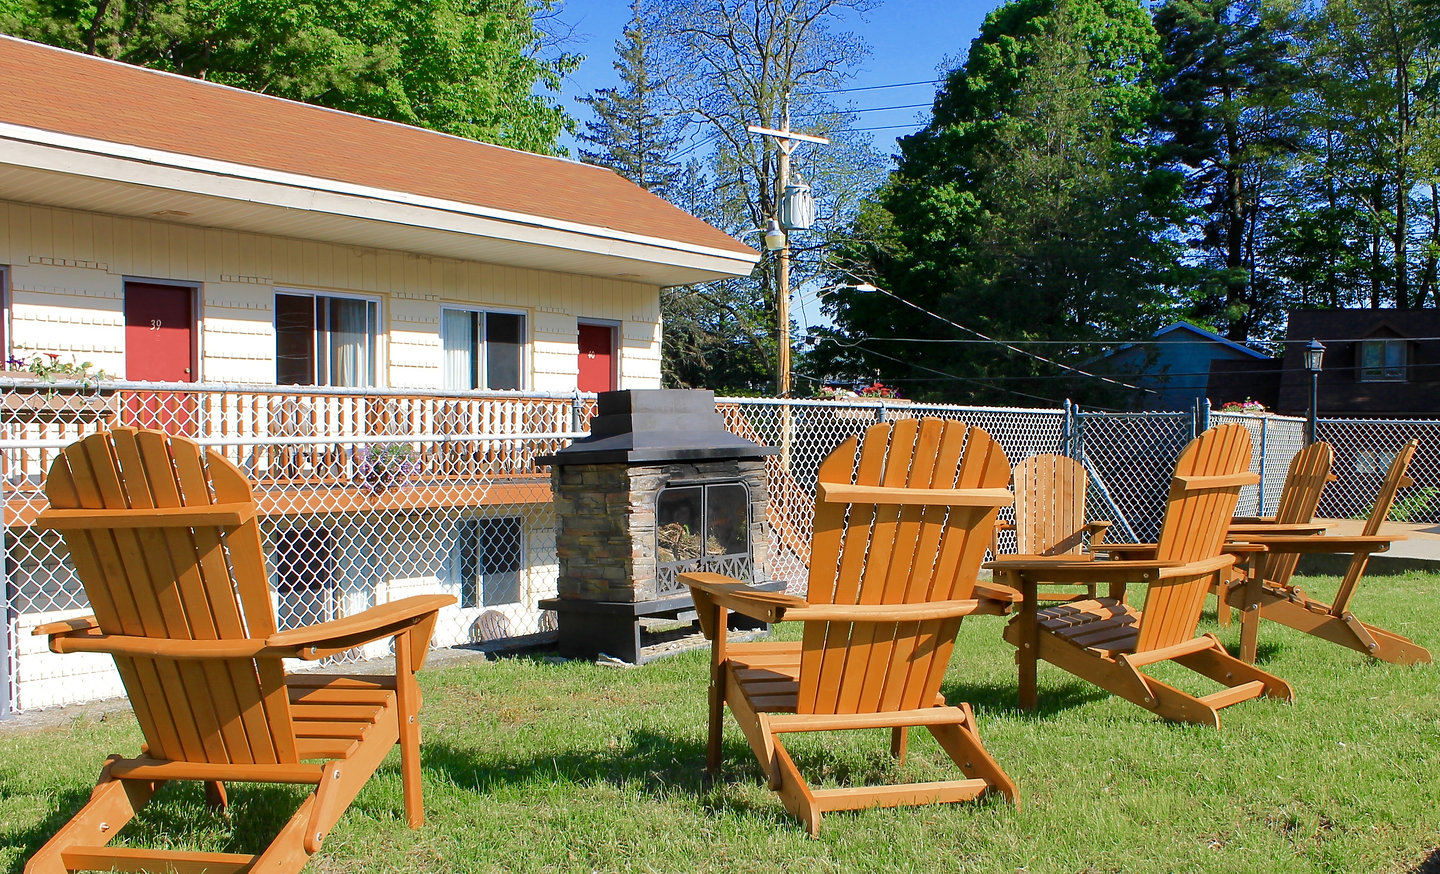 Outdoor fireplace surrounded by Adirondack chairs with the Lake George Motel Montreal in the background